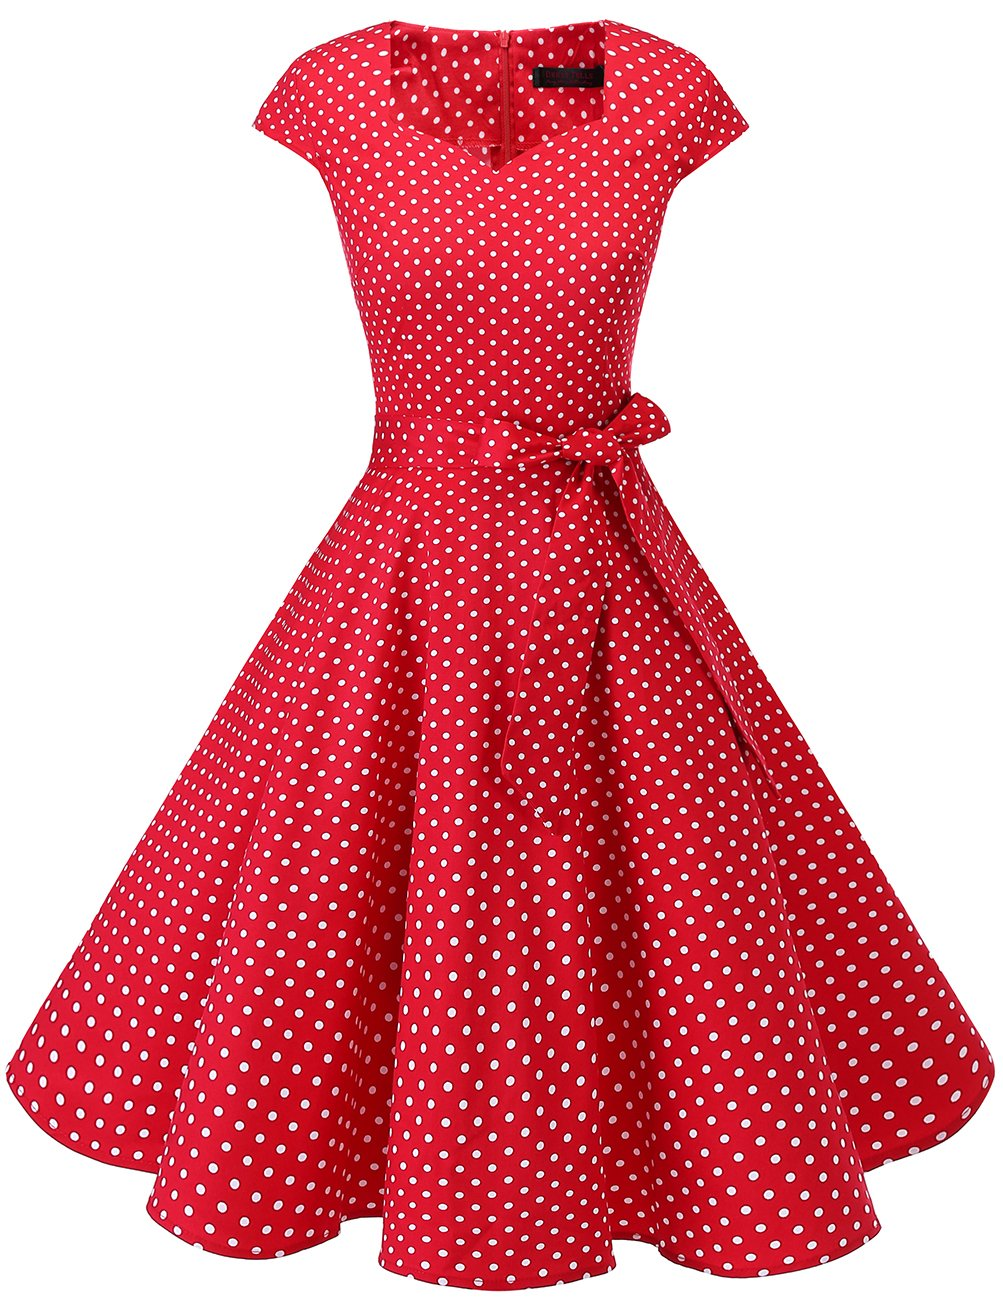 DRESSTELLS Retro 1950s Cocktail Dresses Vintage Swing Dress with Cap-Sleeves Red Small White Dot L by DRESSTELLS